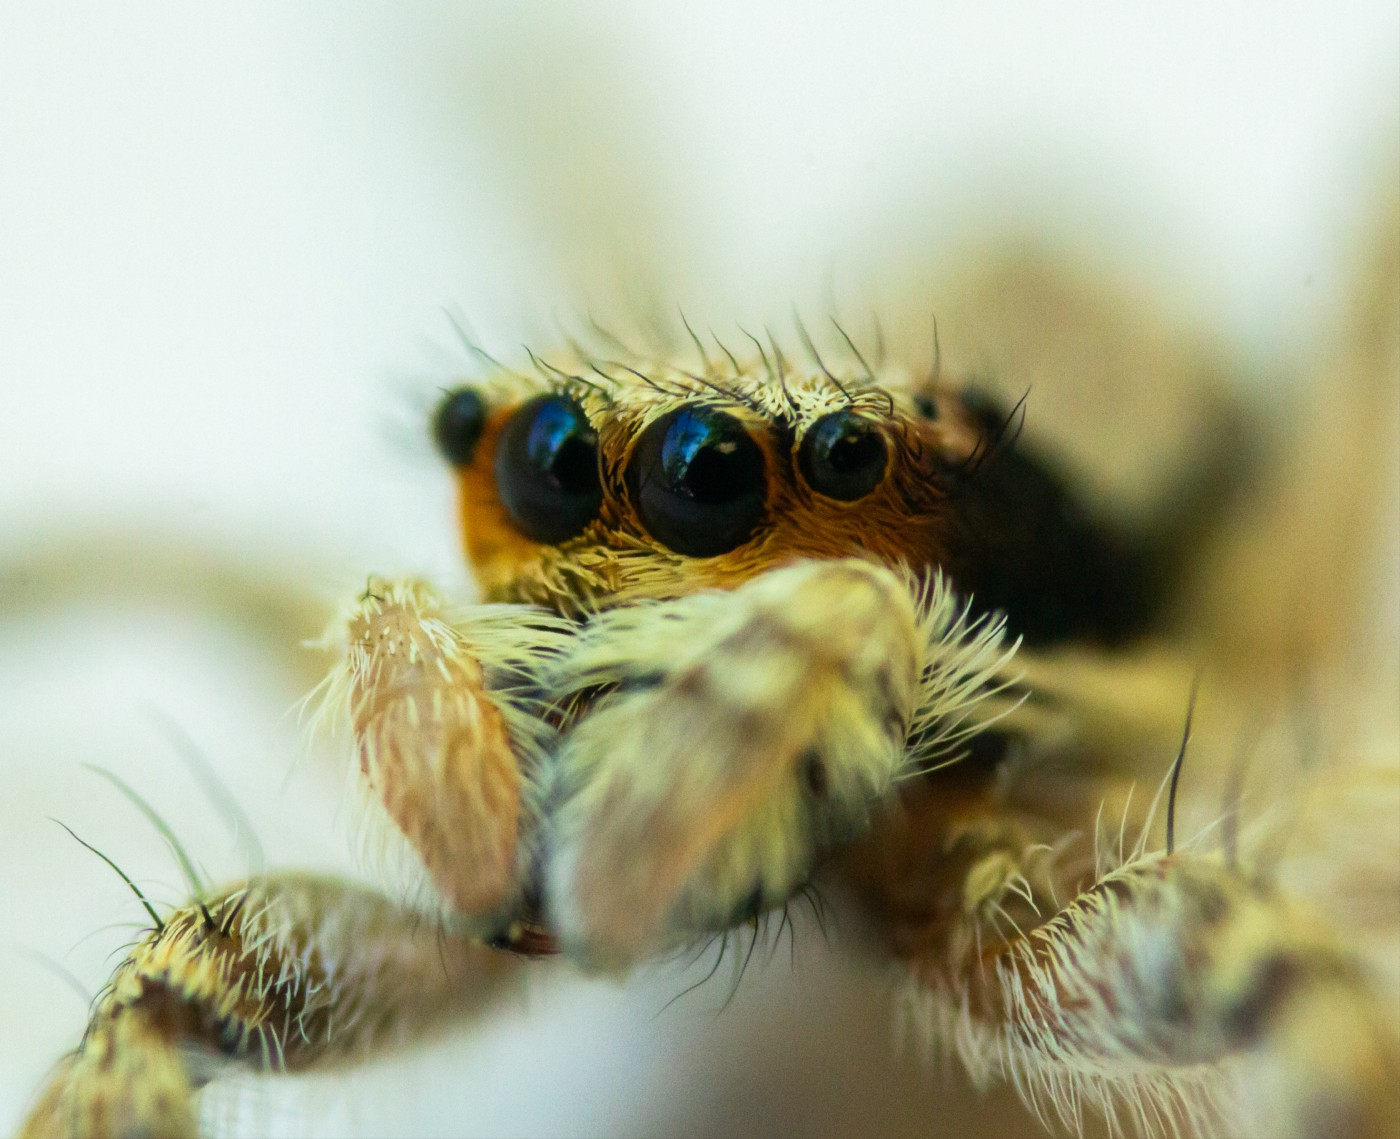 A fluffy spider with cute, slightly mournful eyes.